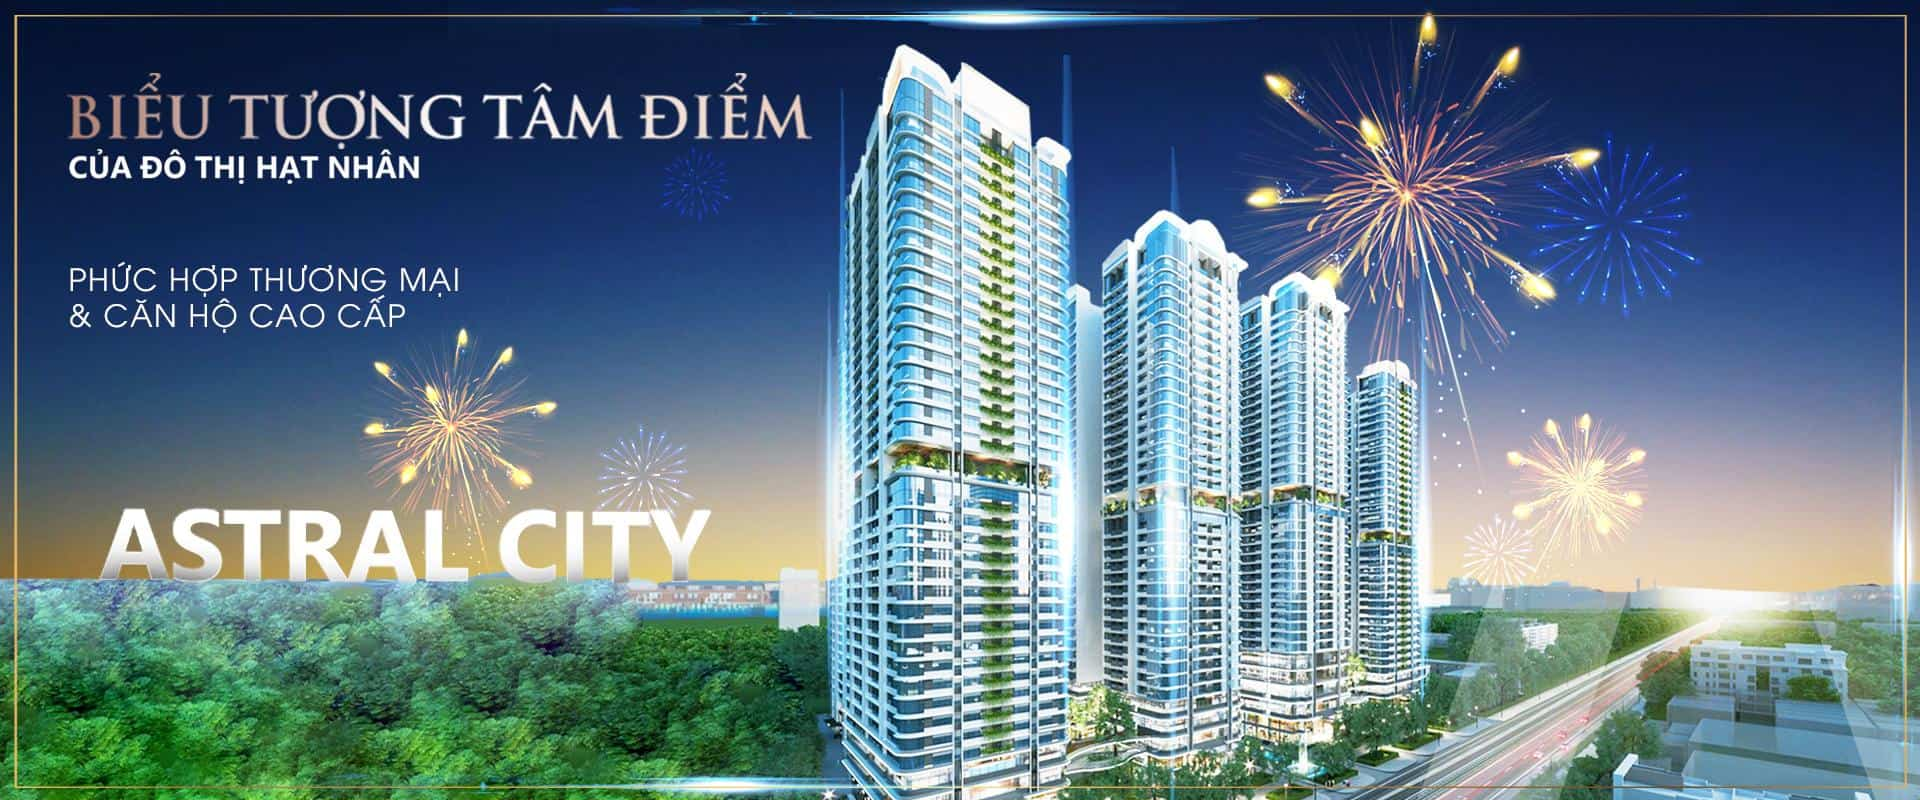 astral-city-binh-duong